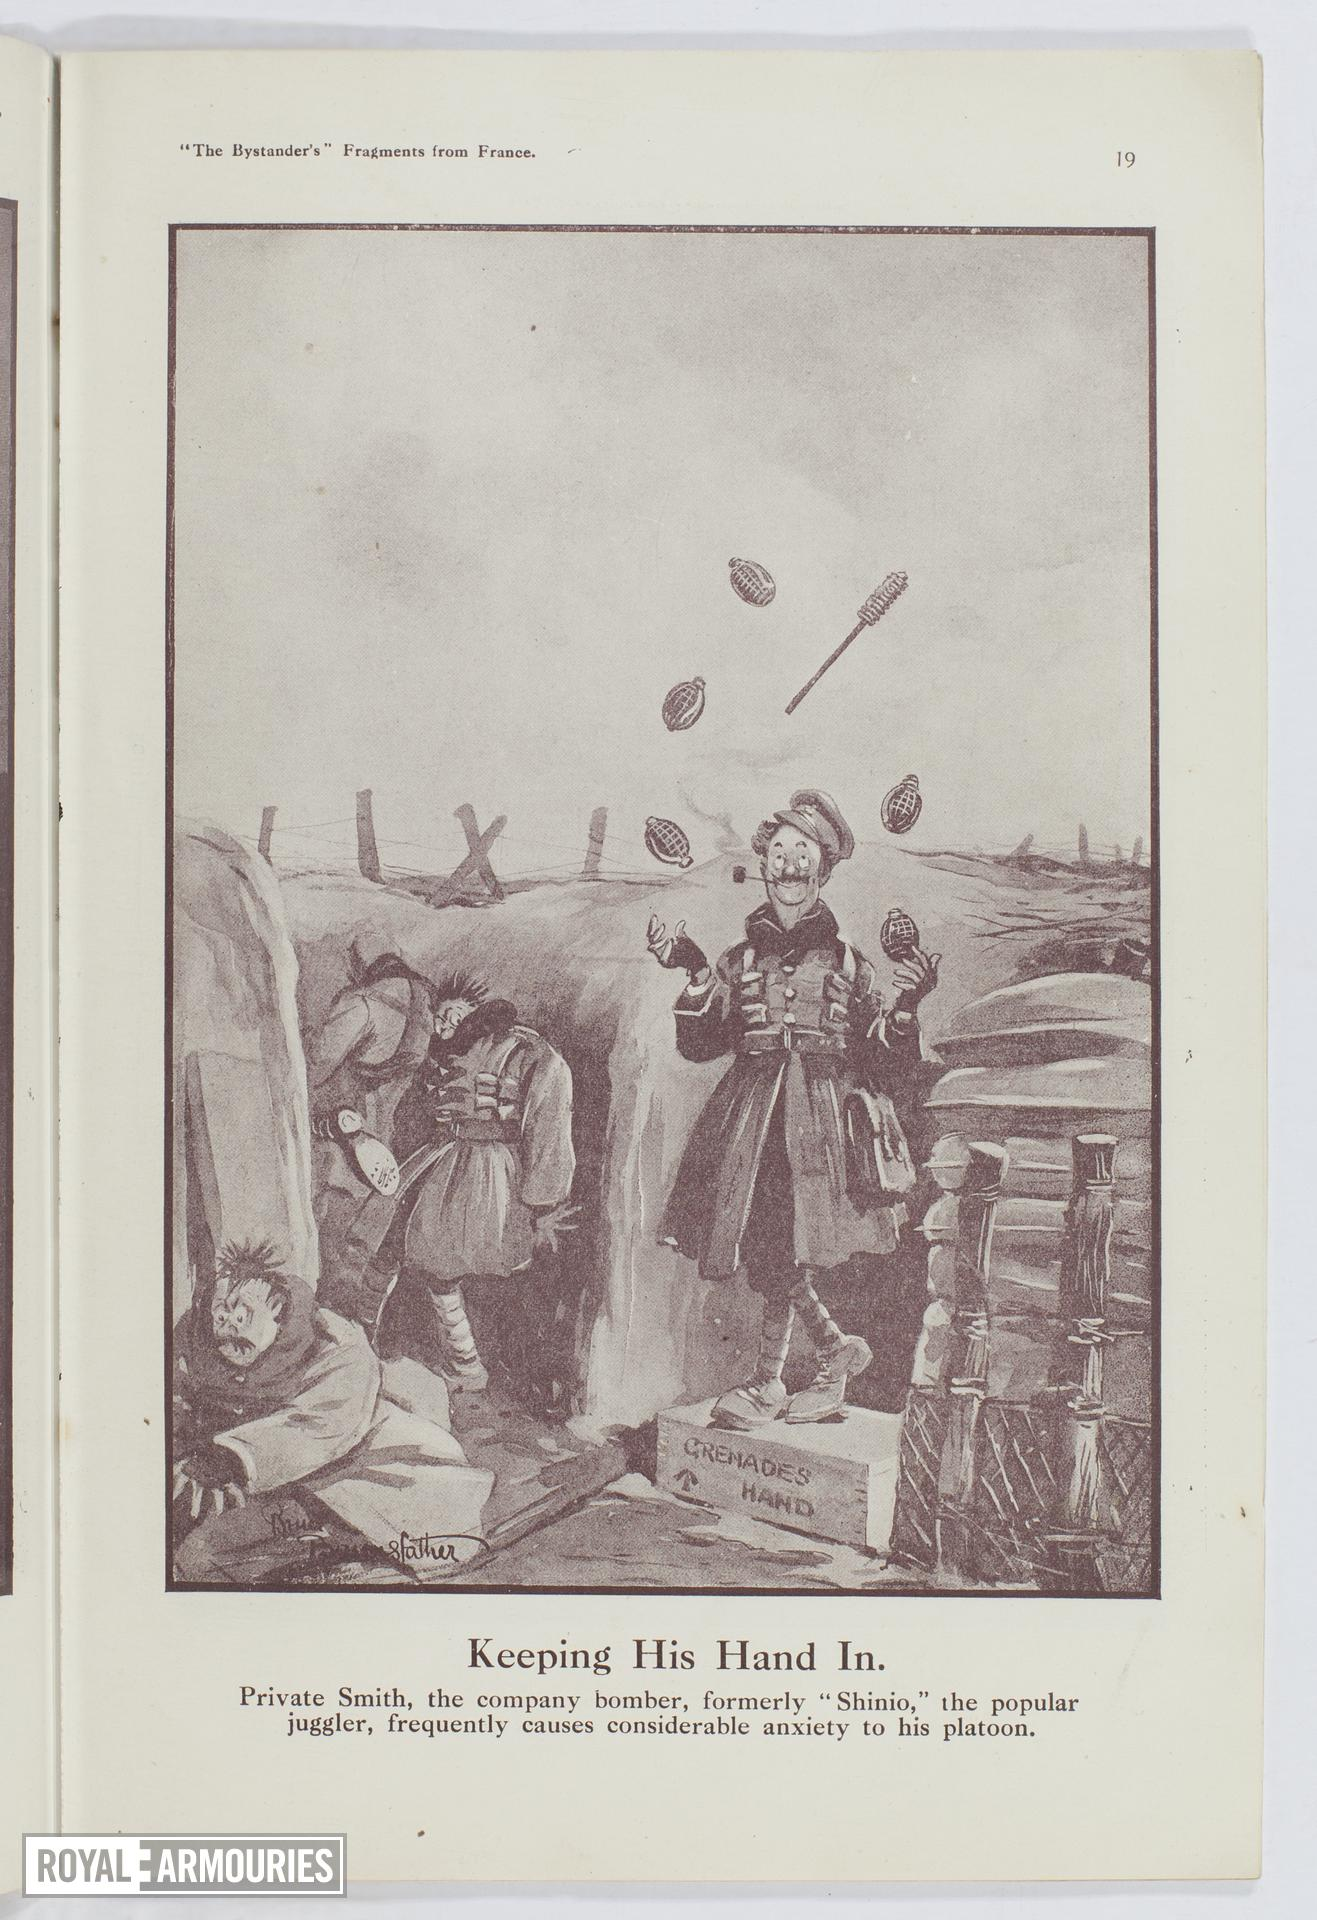 "Plate entitled ,'Keeping His Hand In. Private Smith, the company bomber, formerly ""Shinio,"" the popular juggler, frequently causes considerable anxiety to his platoon.' page 19, taken from the title, The Bystander's Fragments from France, tenth edition by Captain Bruce Bairnsfather."